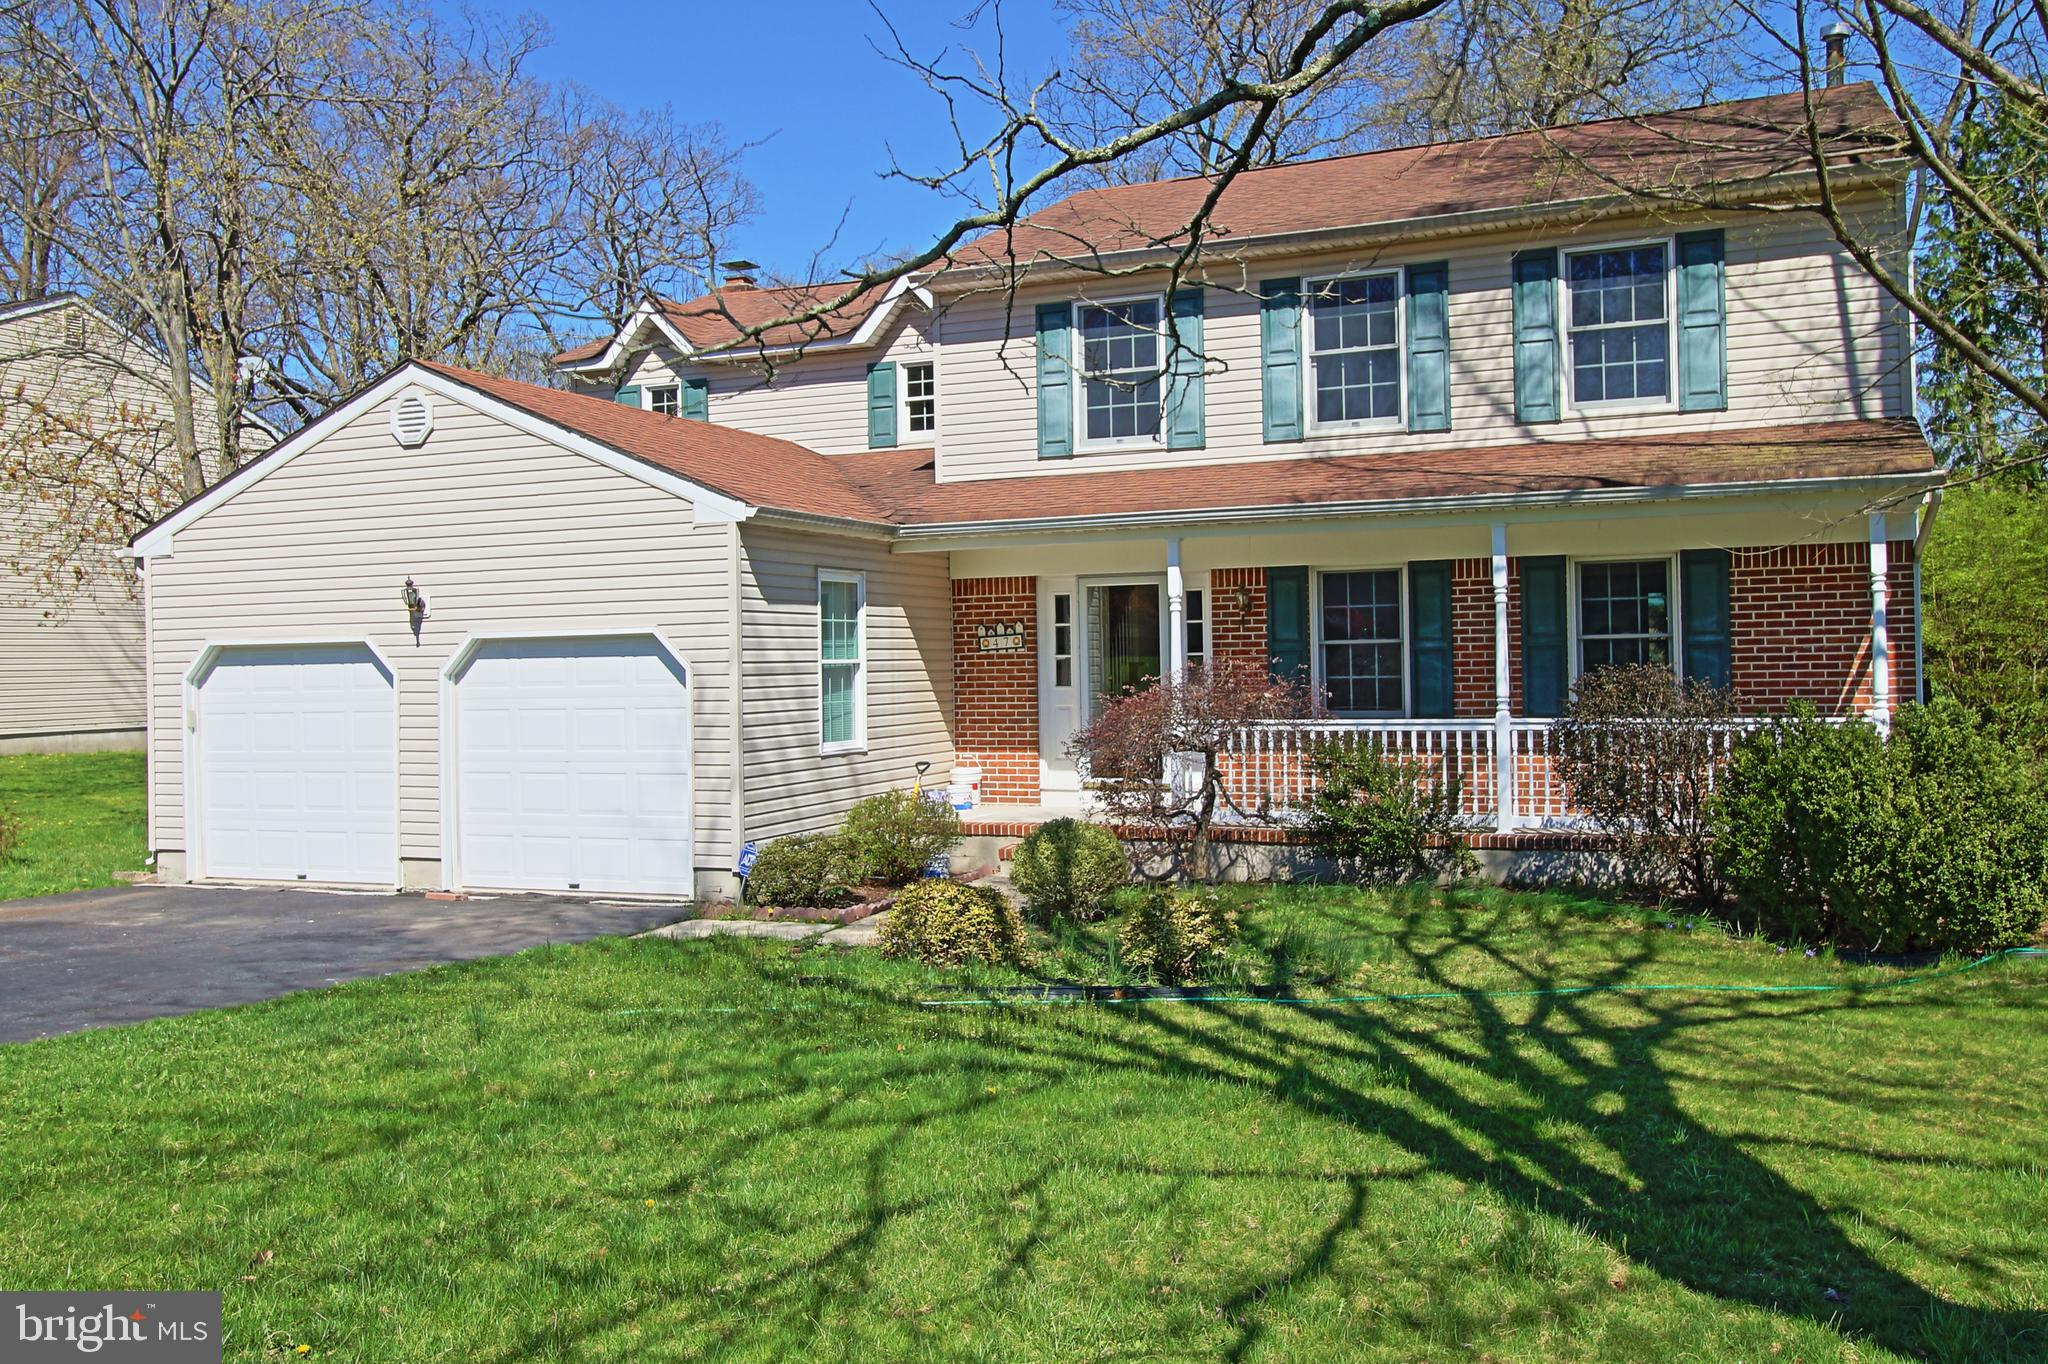 47 PINECREST ROAD, SOMERSET, NJ 08873